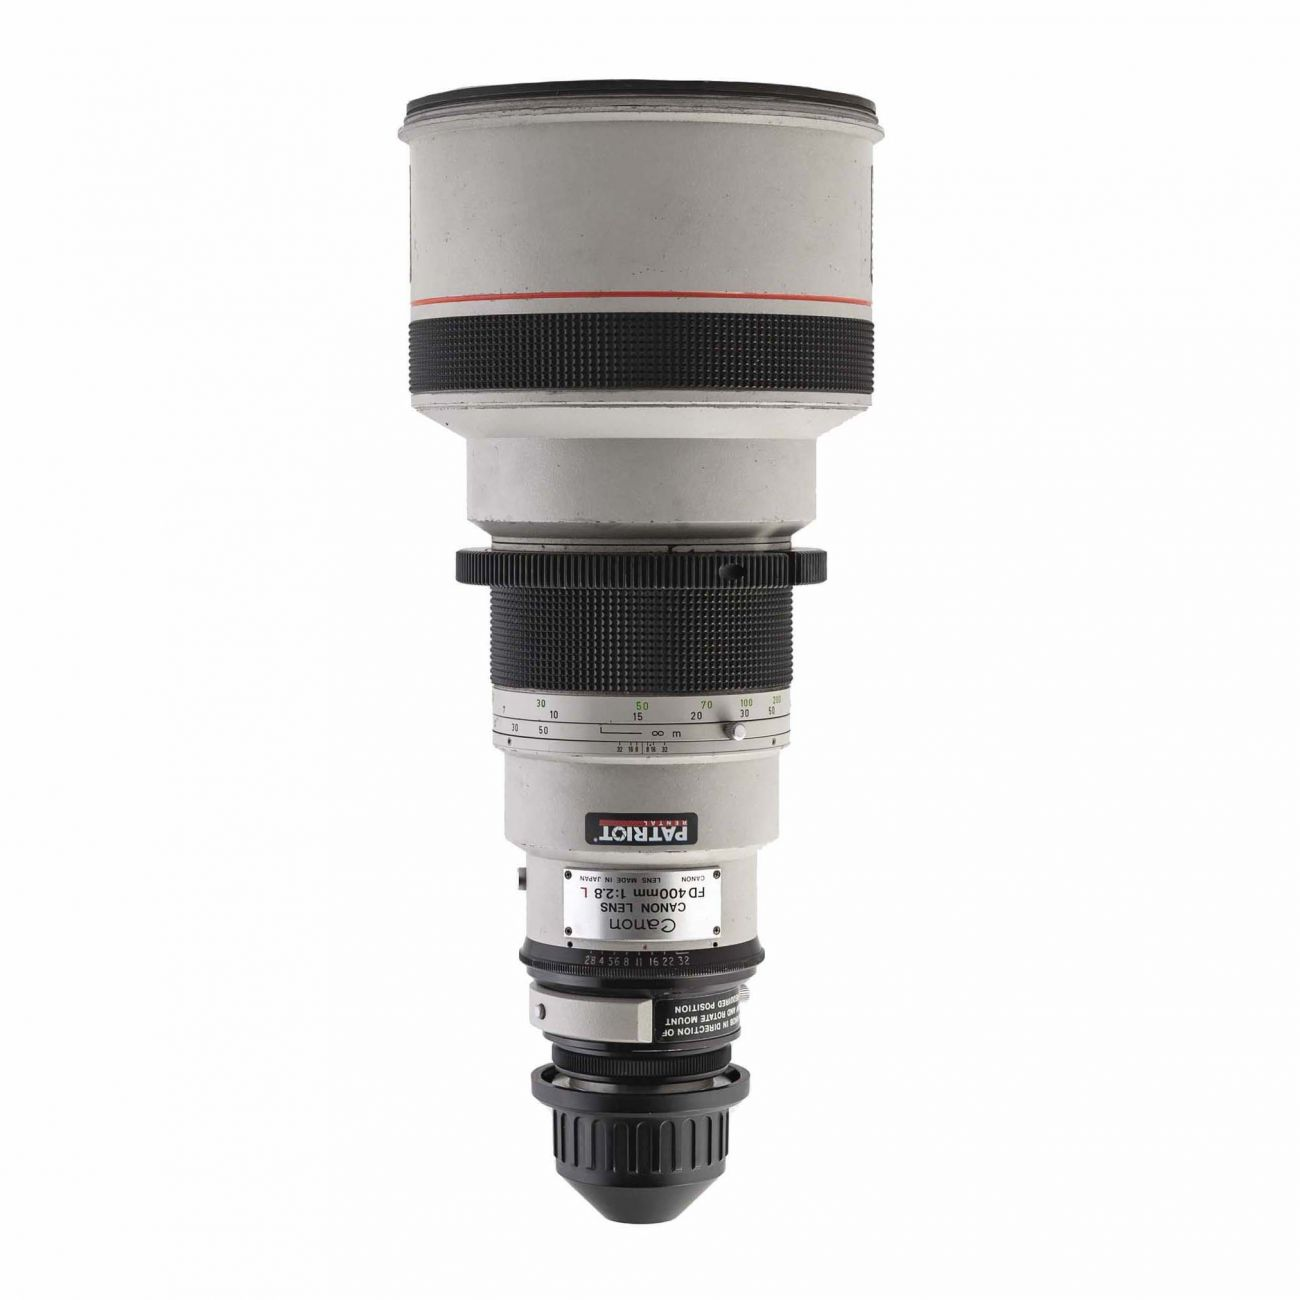 400mm Canon lens f/4 DO IS USM